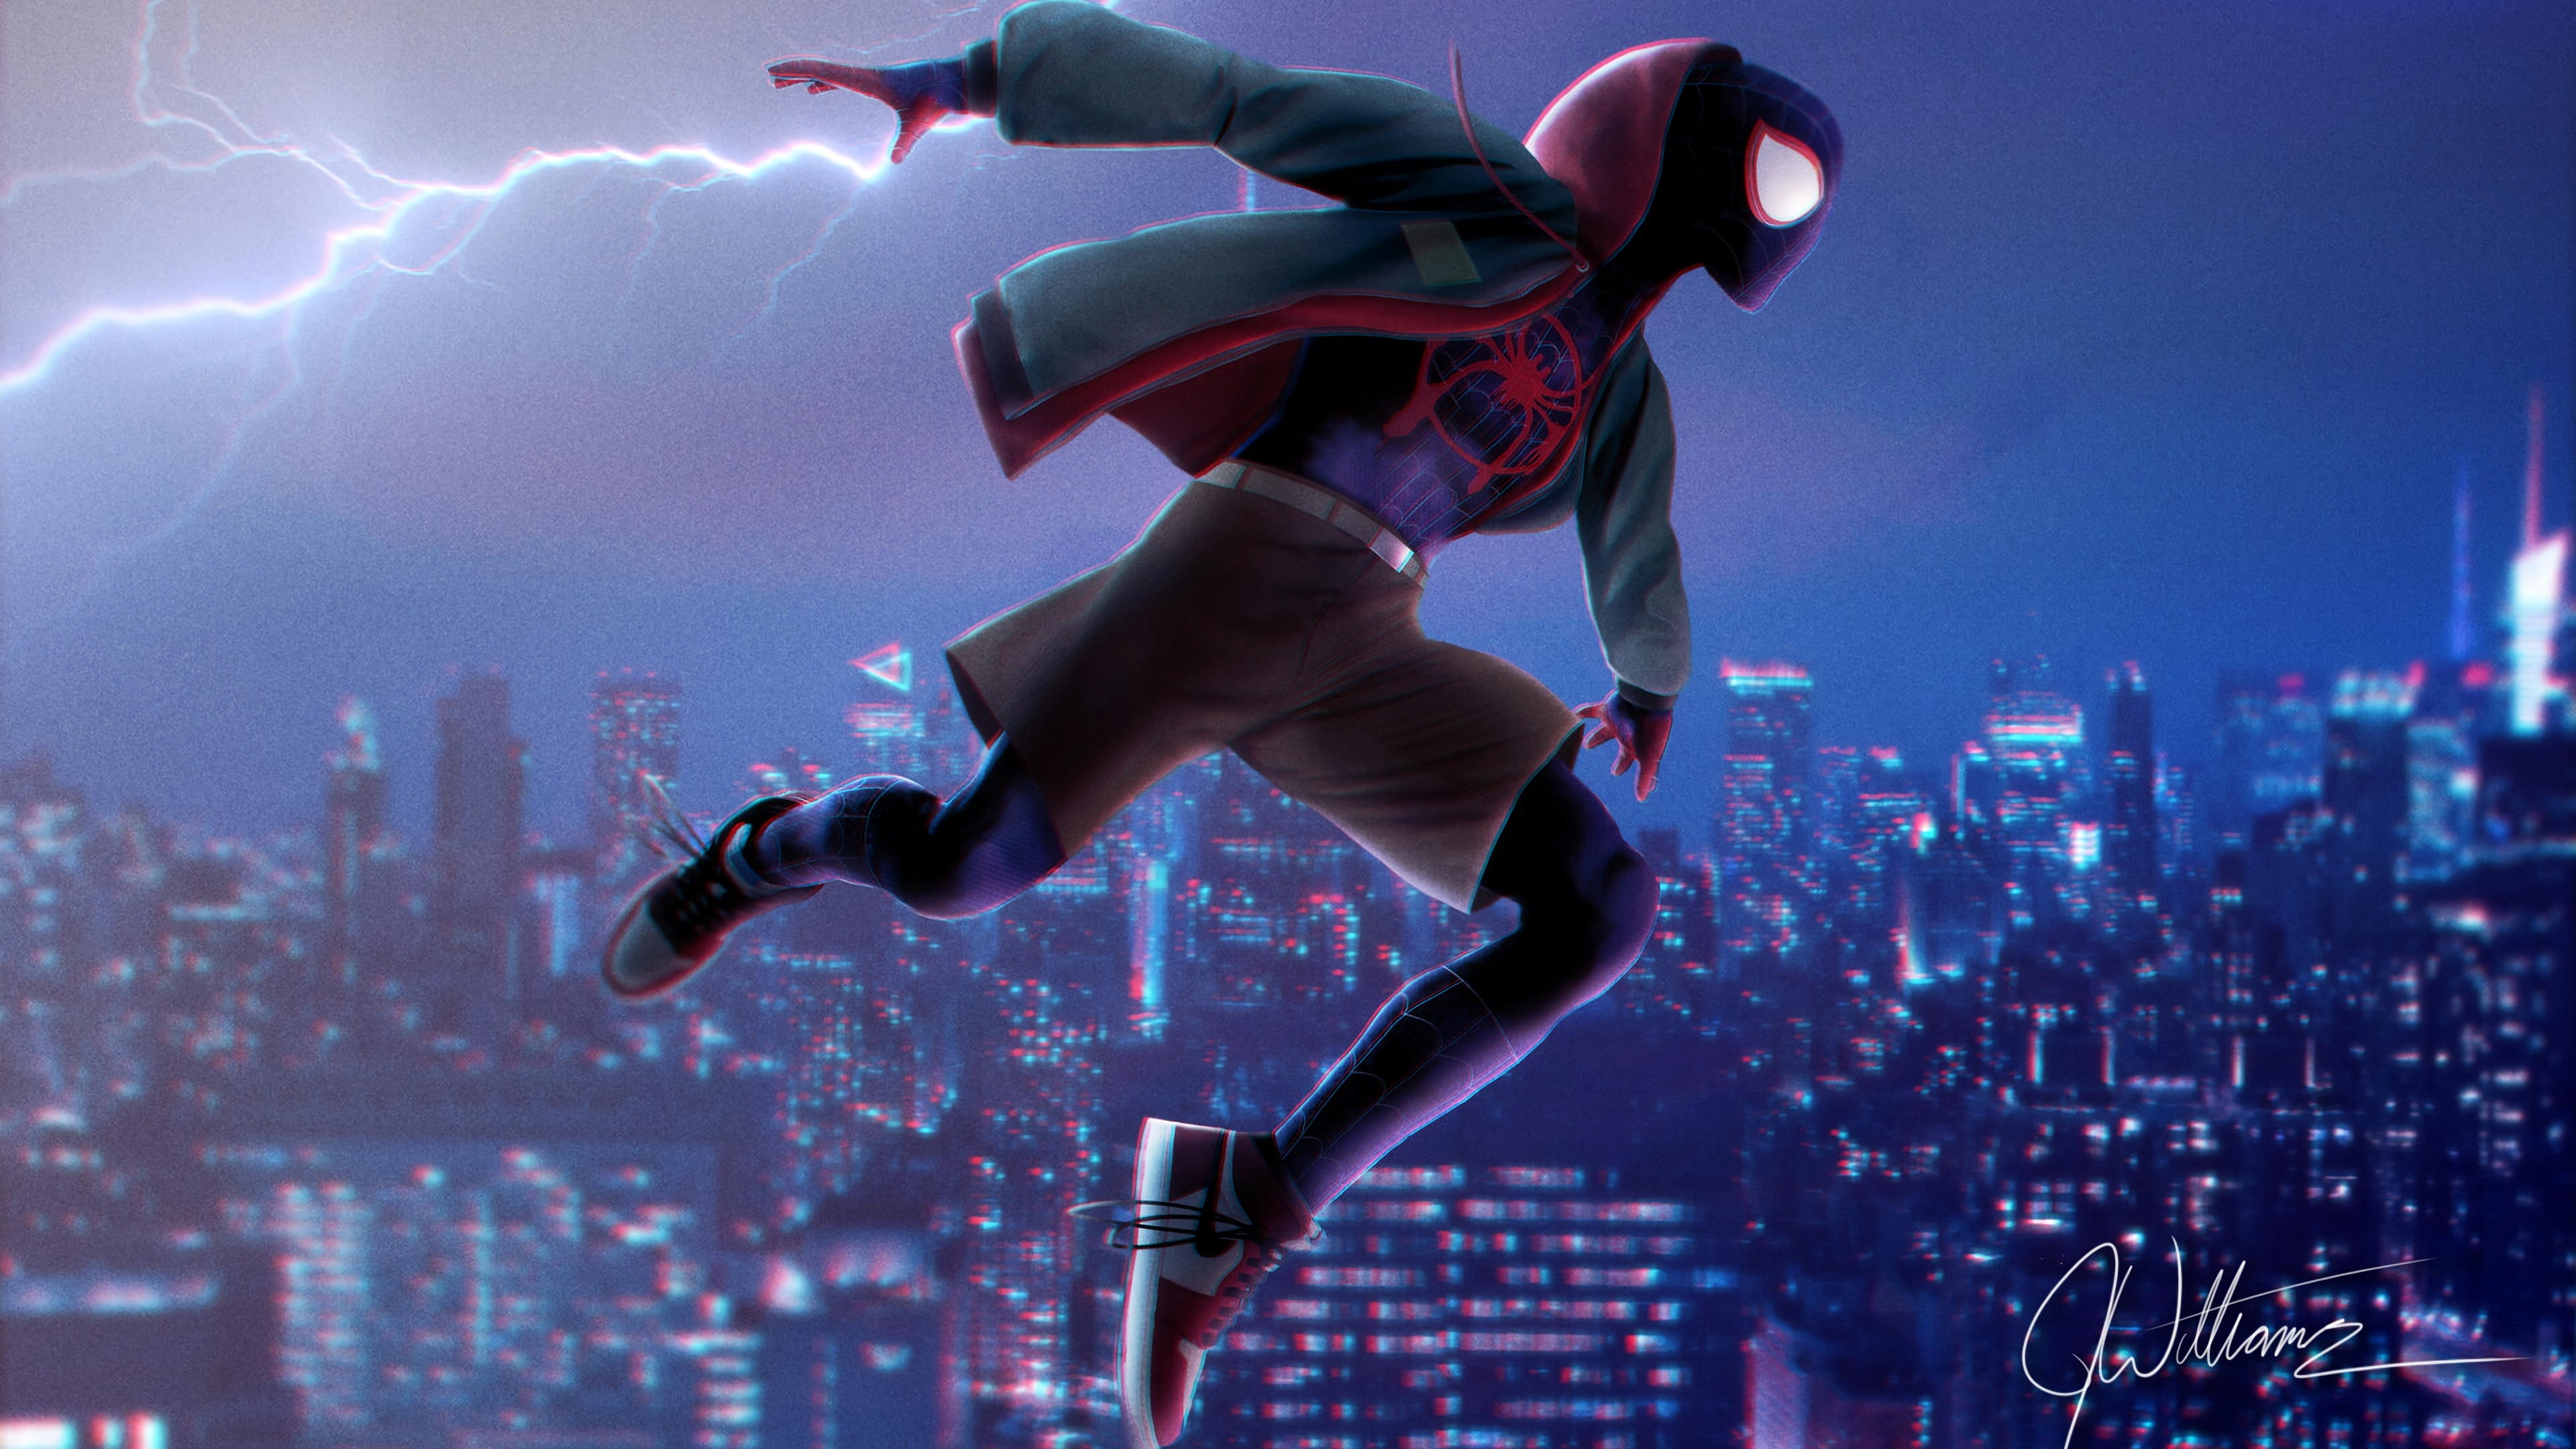 whats up danger 1568055397 - Whats Up Danger - superheroes wallpapers, spiderman wallpapers, hd-wallpapers, artstation wallpapers, 4k-wallpapers